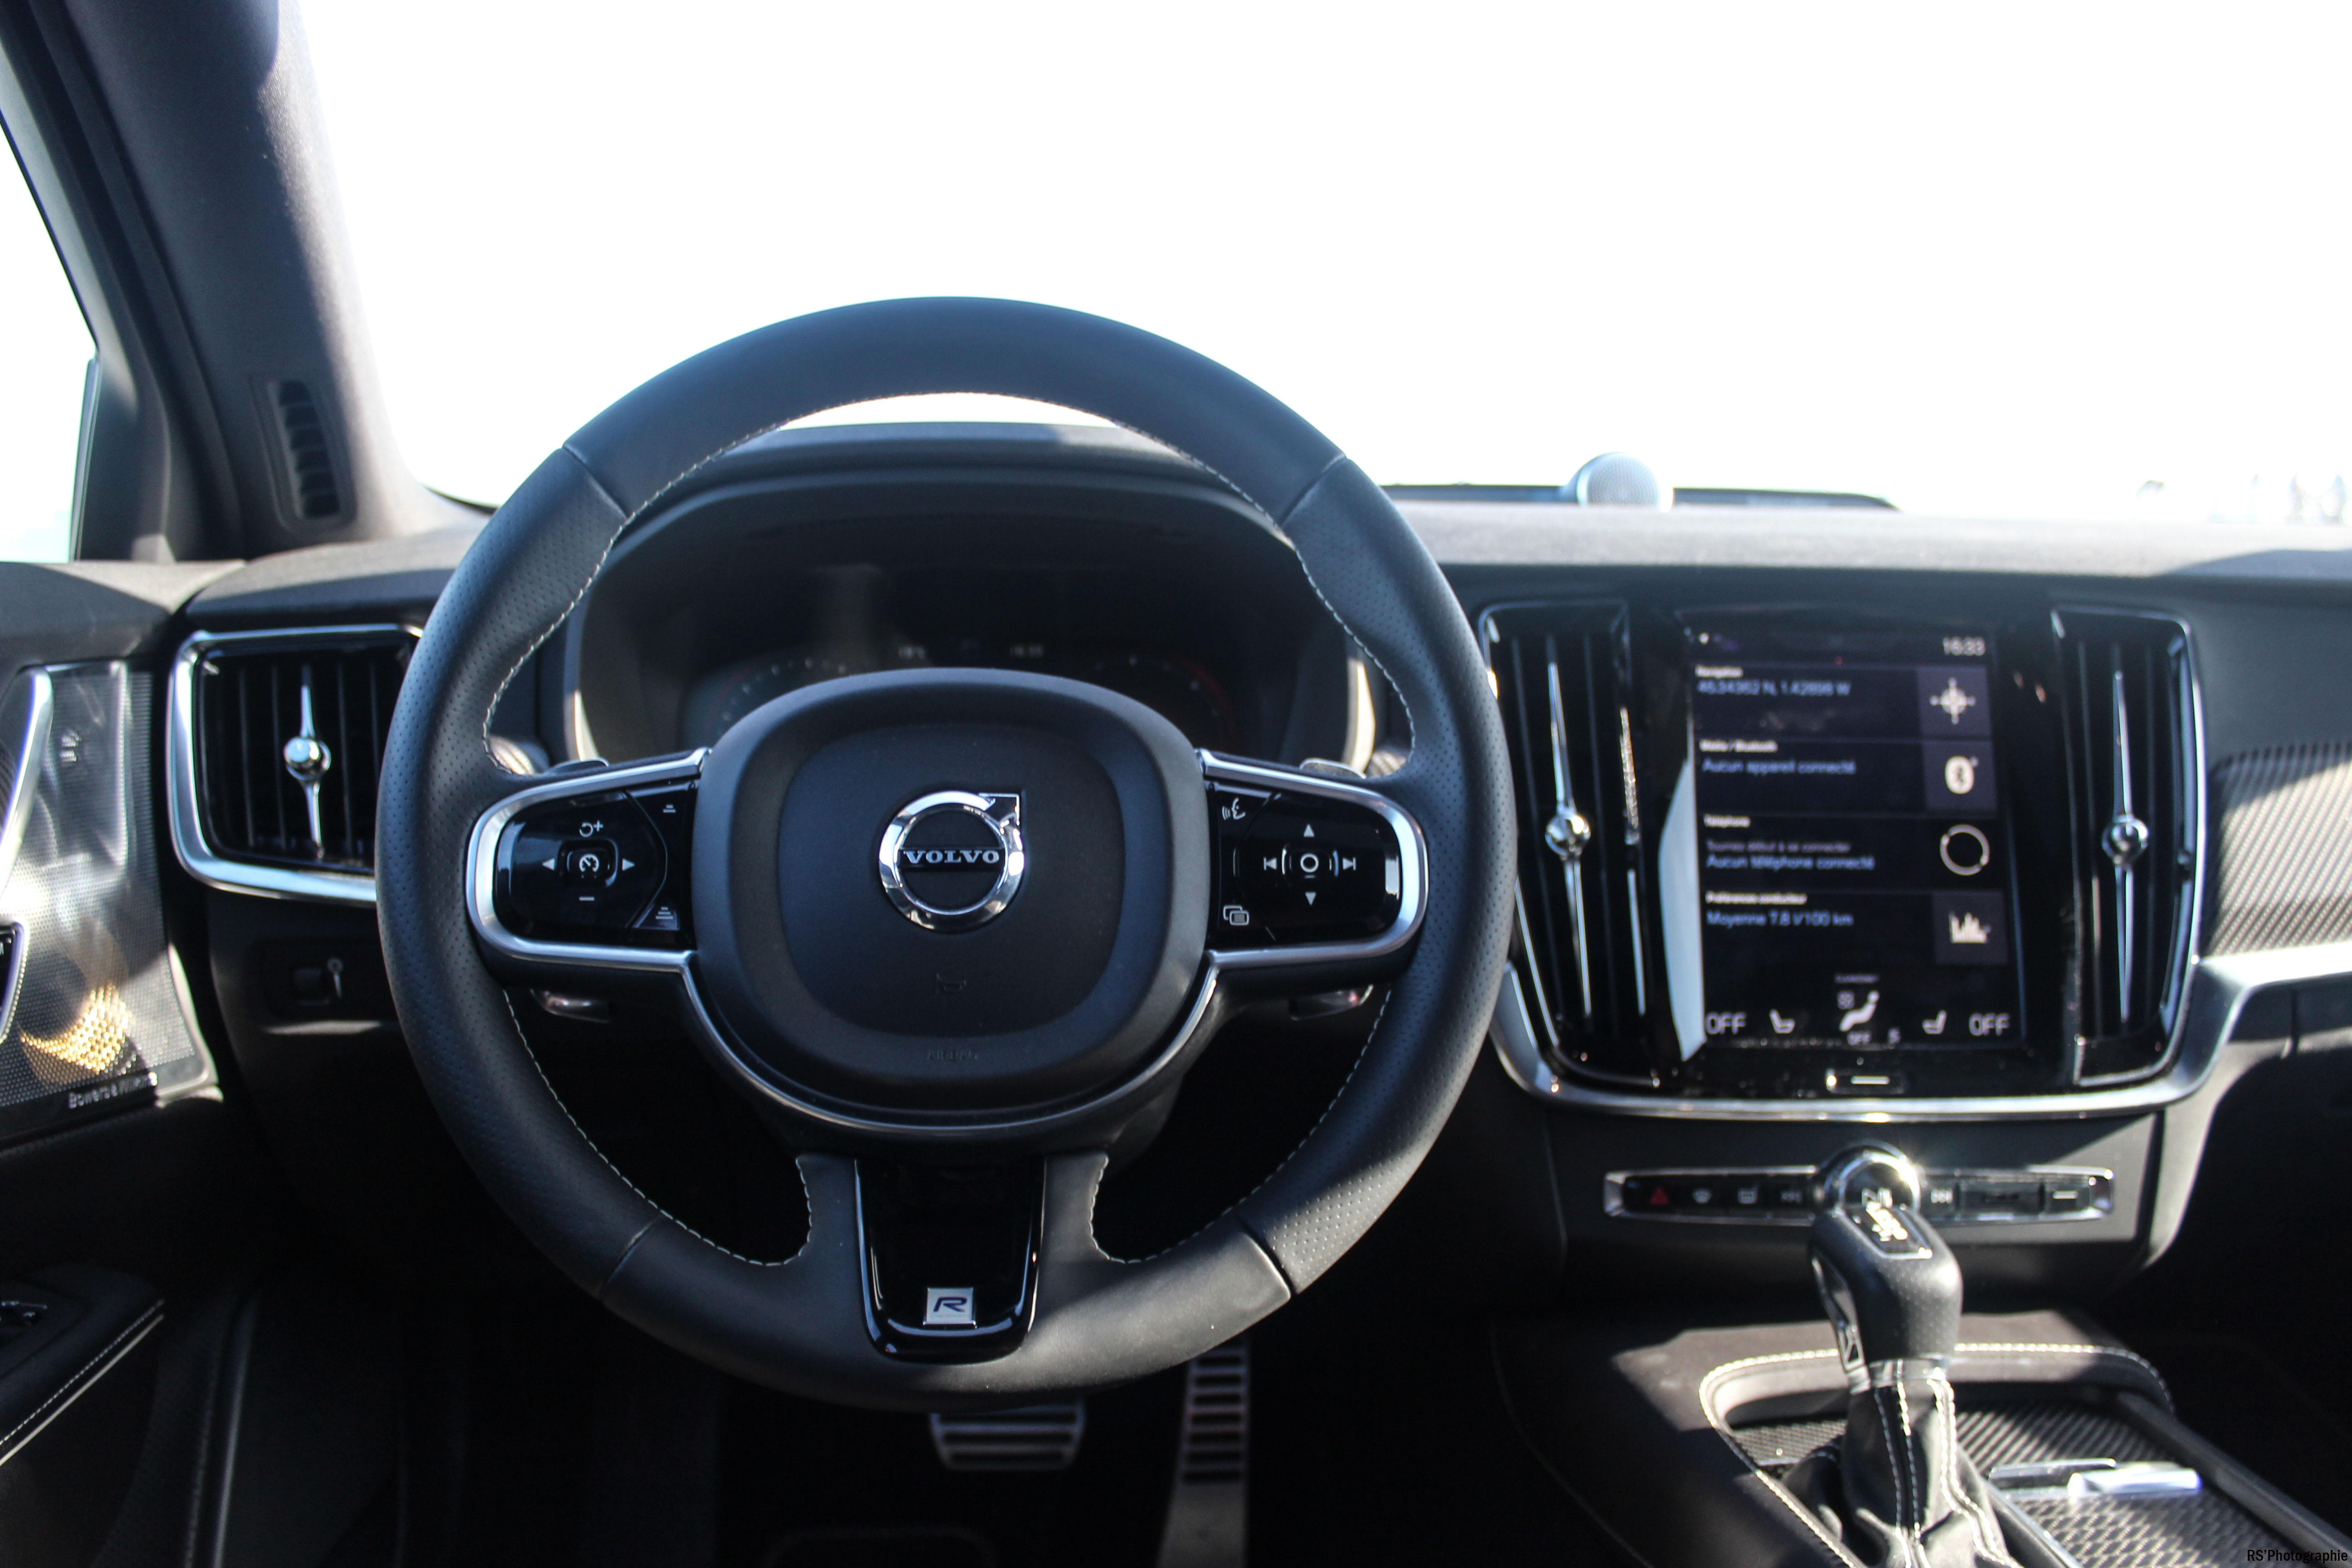 volvos9027-volvo-s90-d3-intérieur-onboard-Arnaud Demasier-RSPhotographie